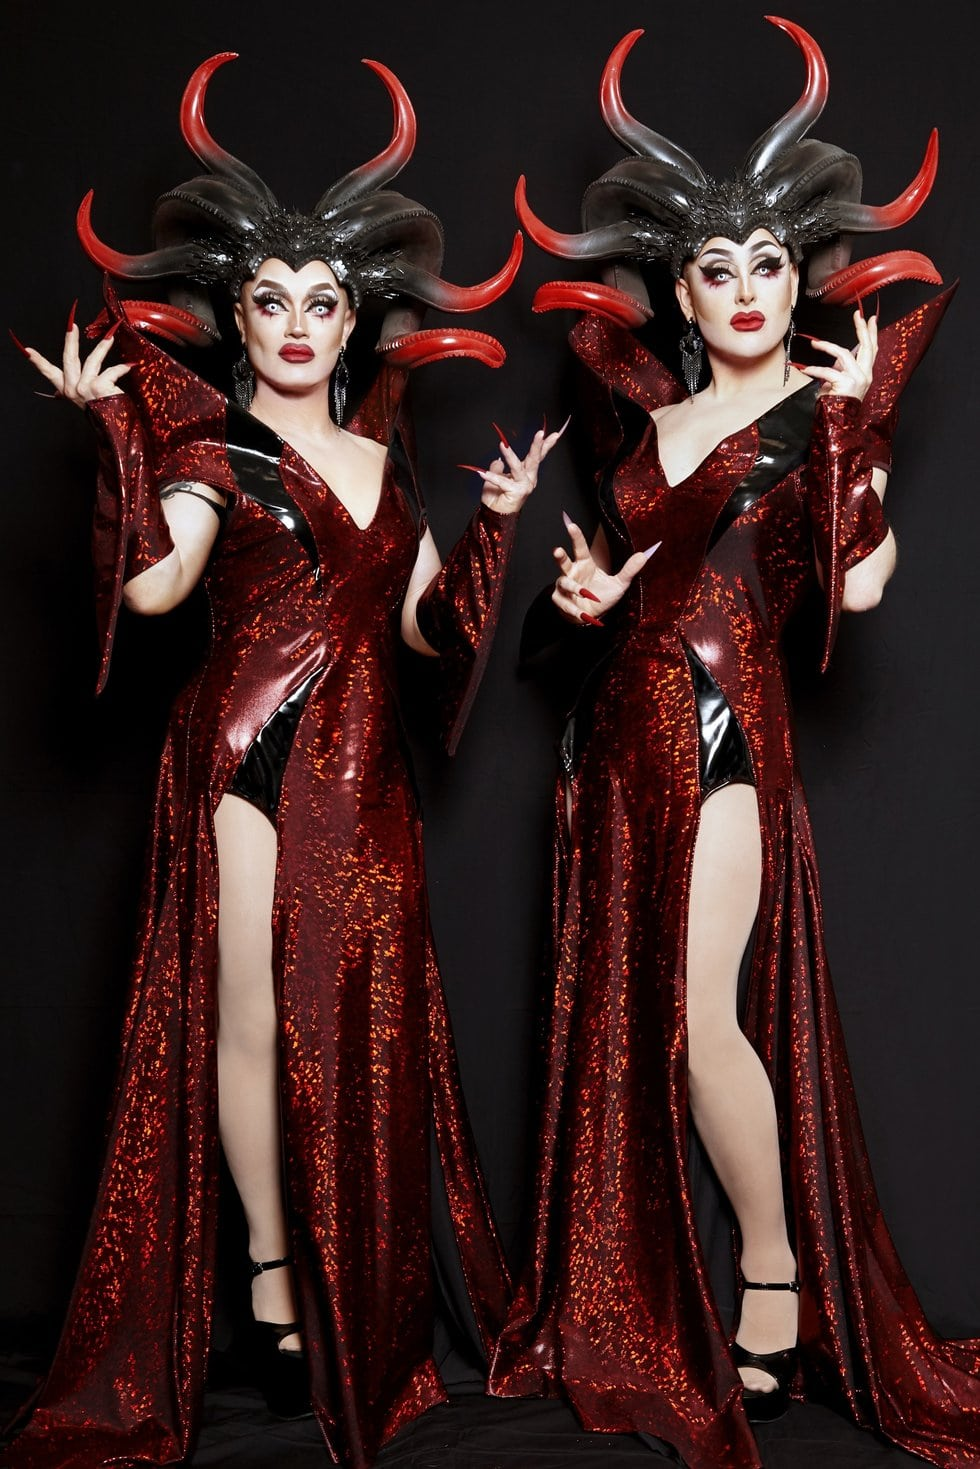 WATCH: Final trailer for Dragula season 4 drops and its a horror RIOT